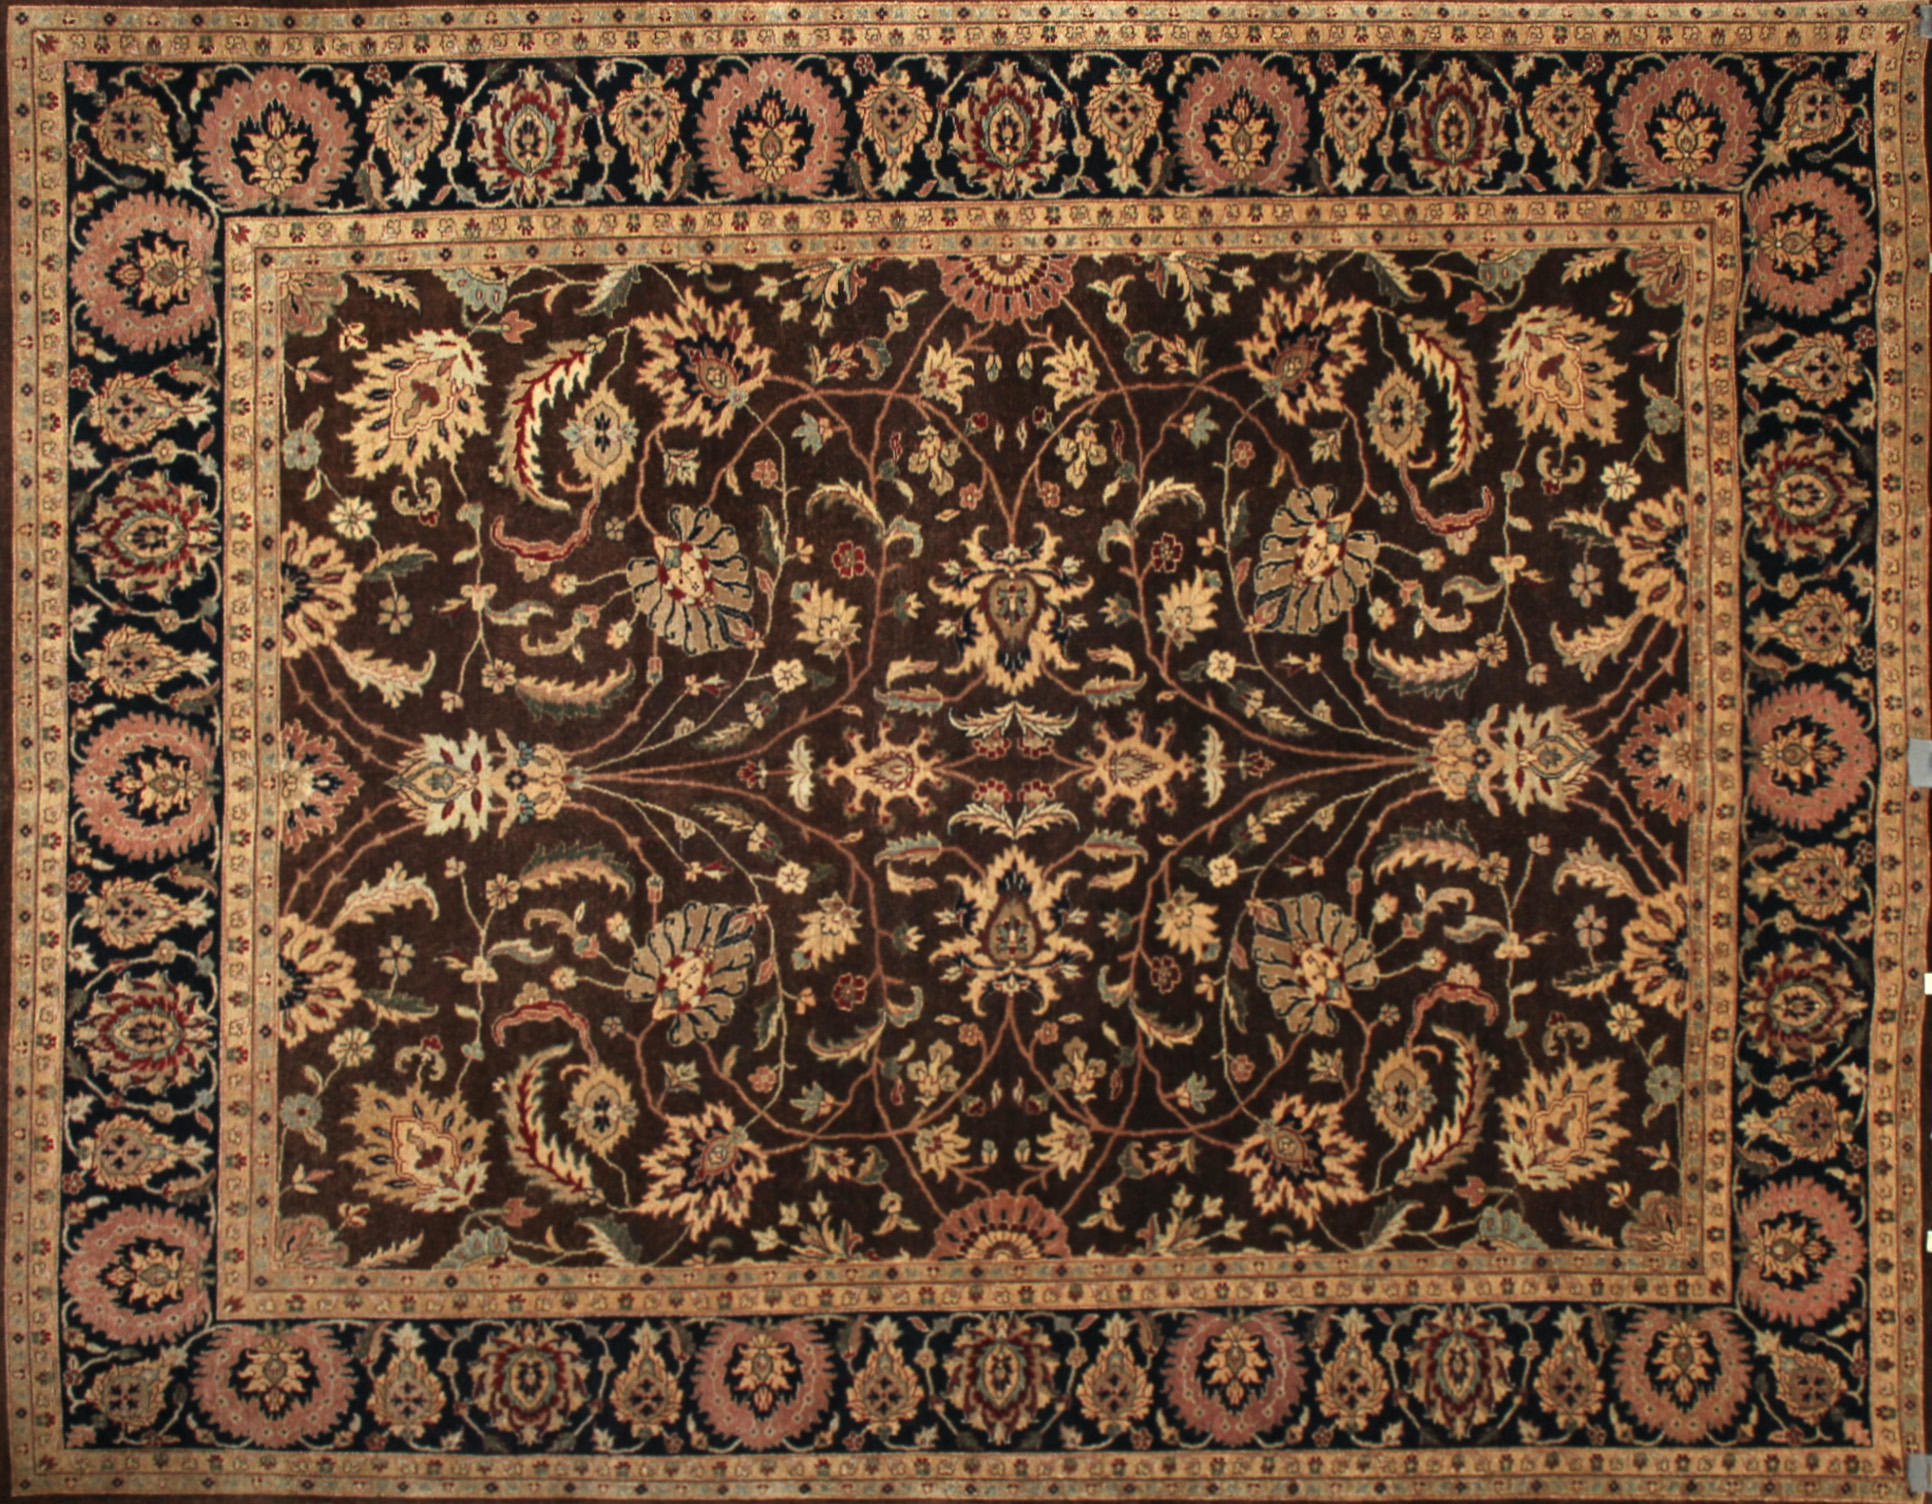 8x10 Traditional Hand Knotted Wool Area Rug - MR13725